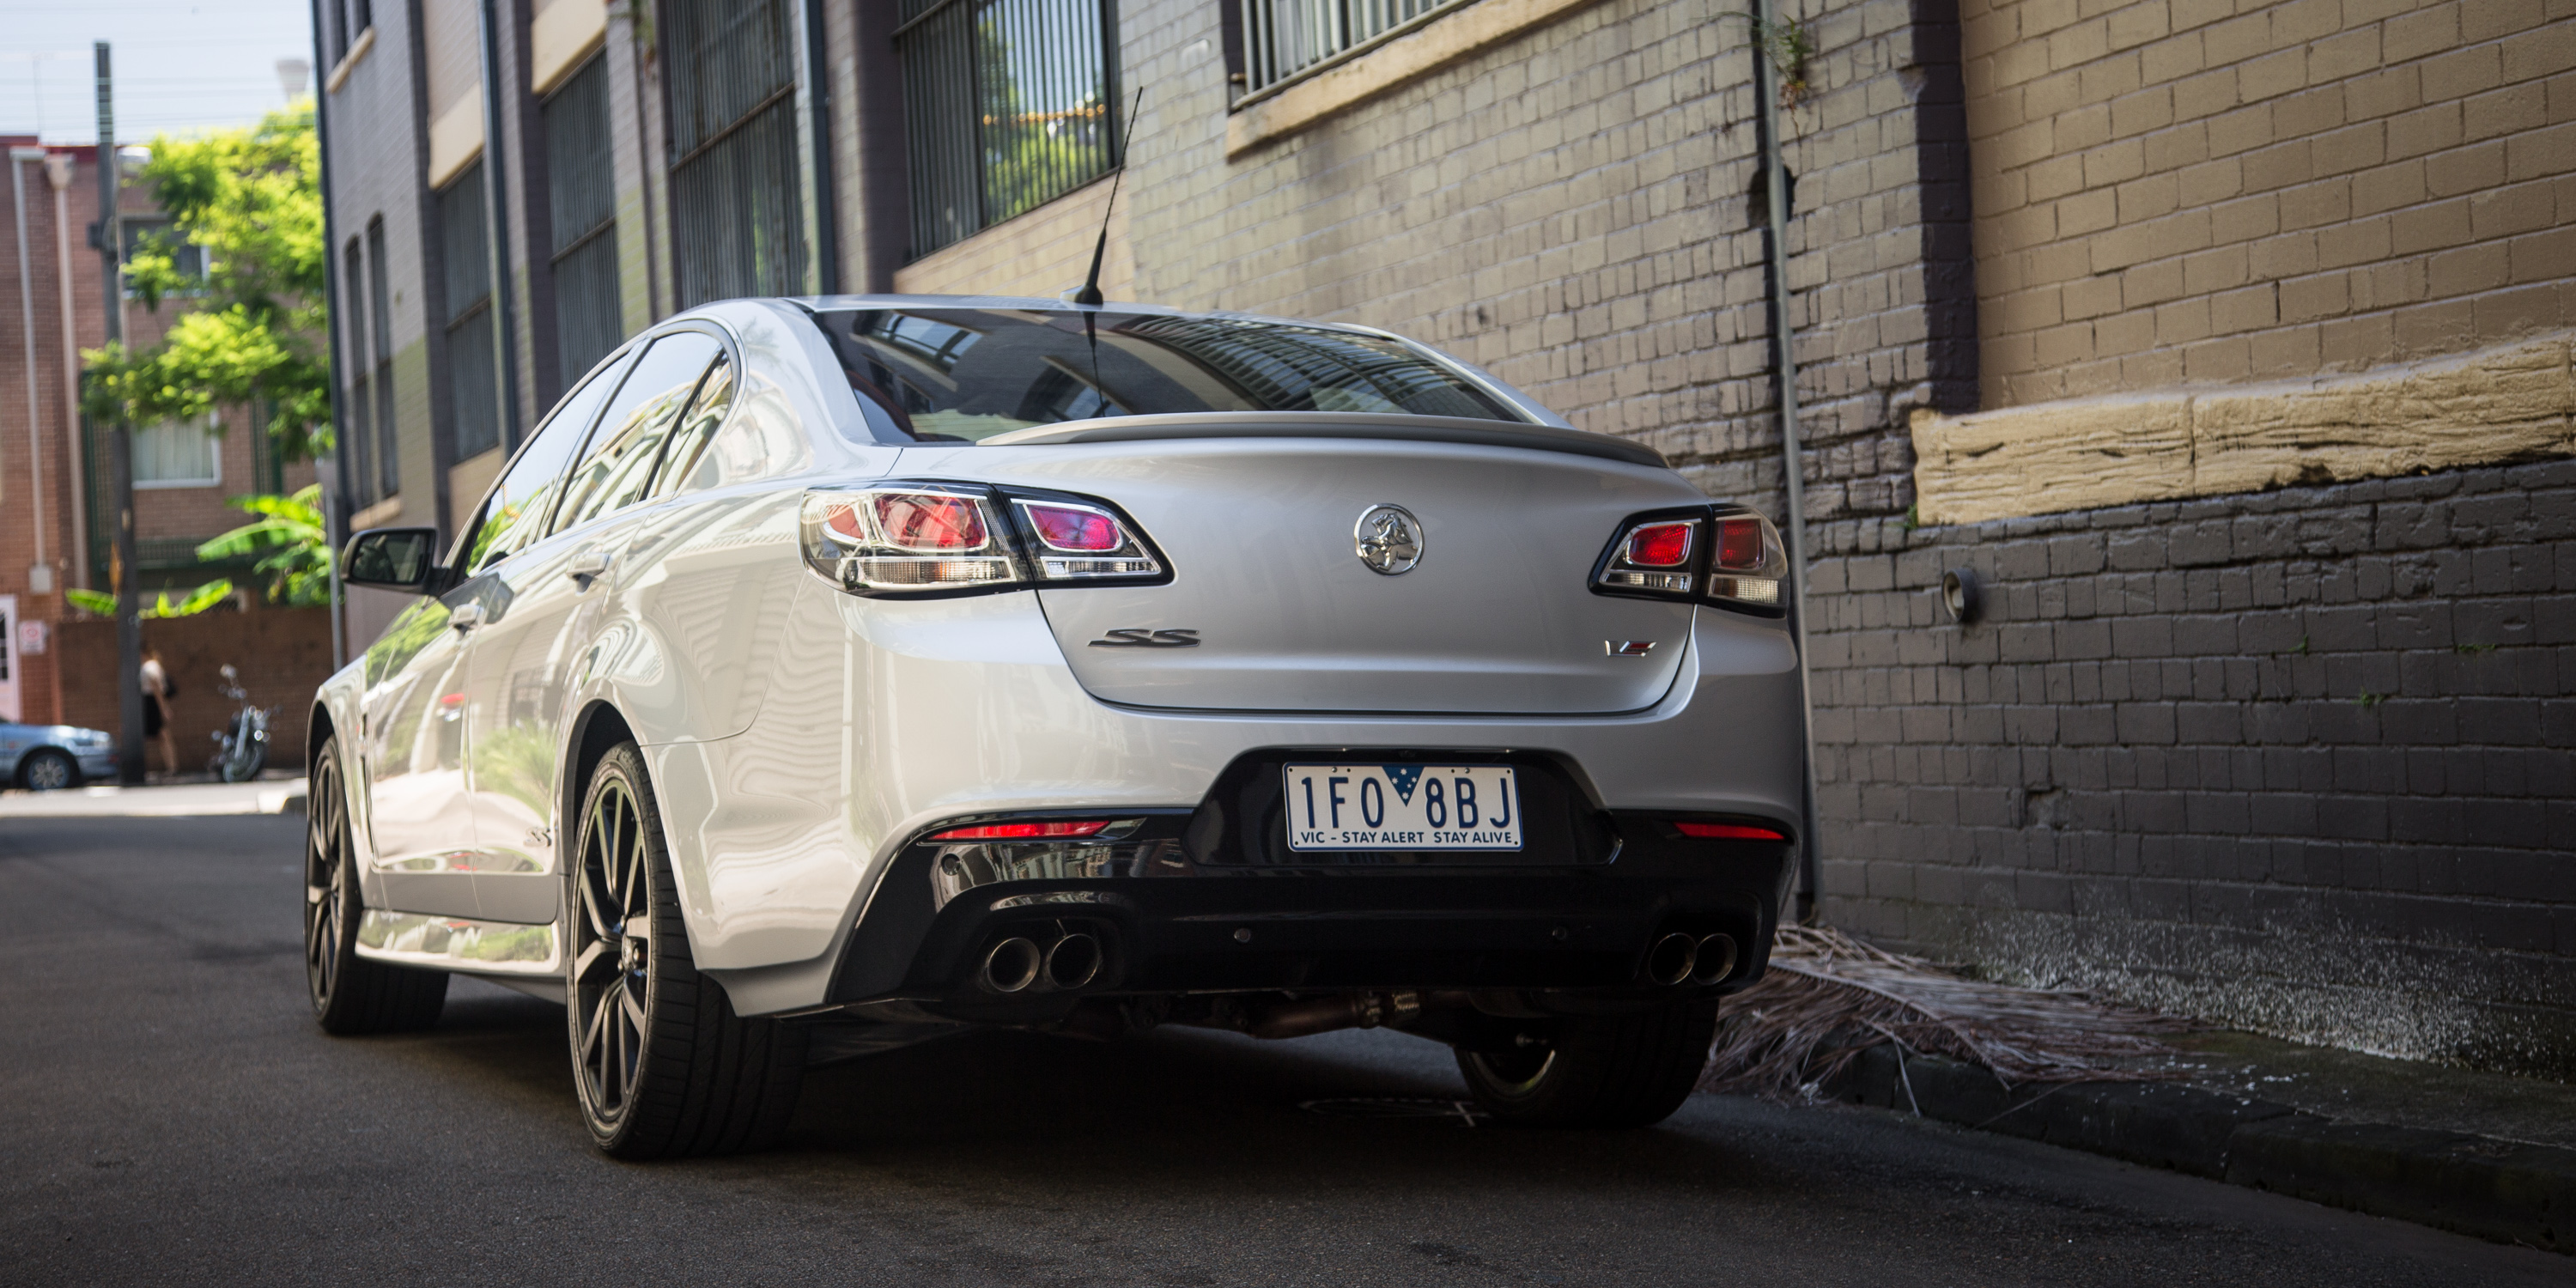 2016 Holden Commodore SS-V Redline review: Driving the city